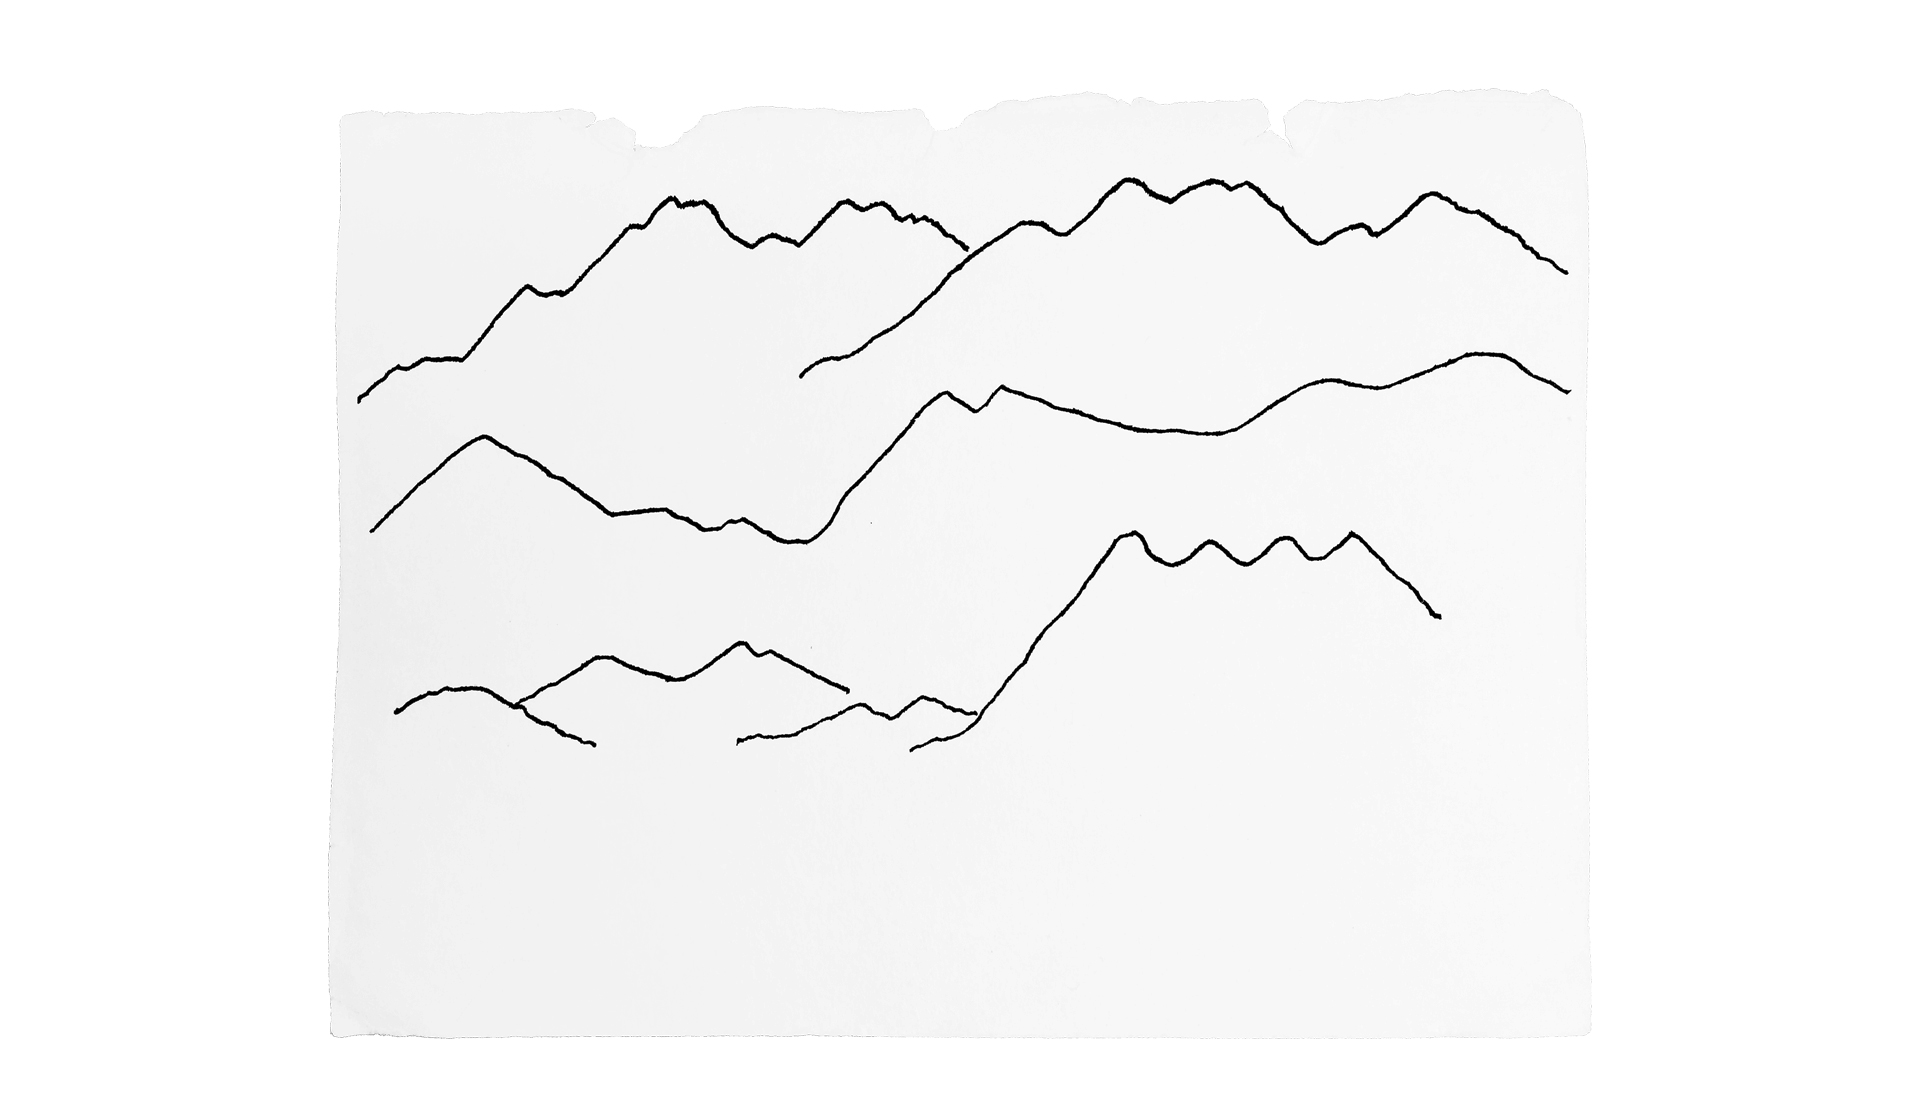 moutains_lines_1